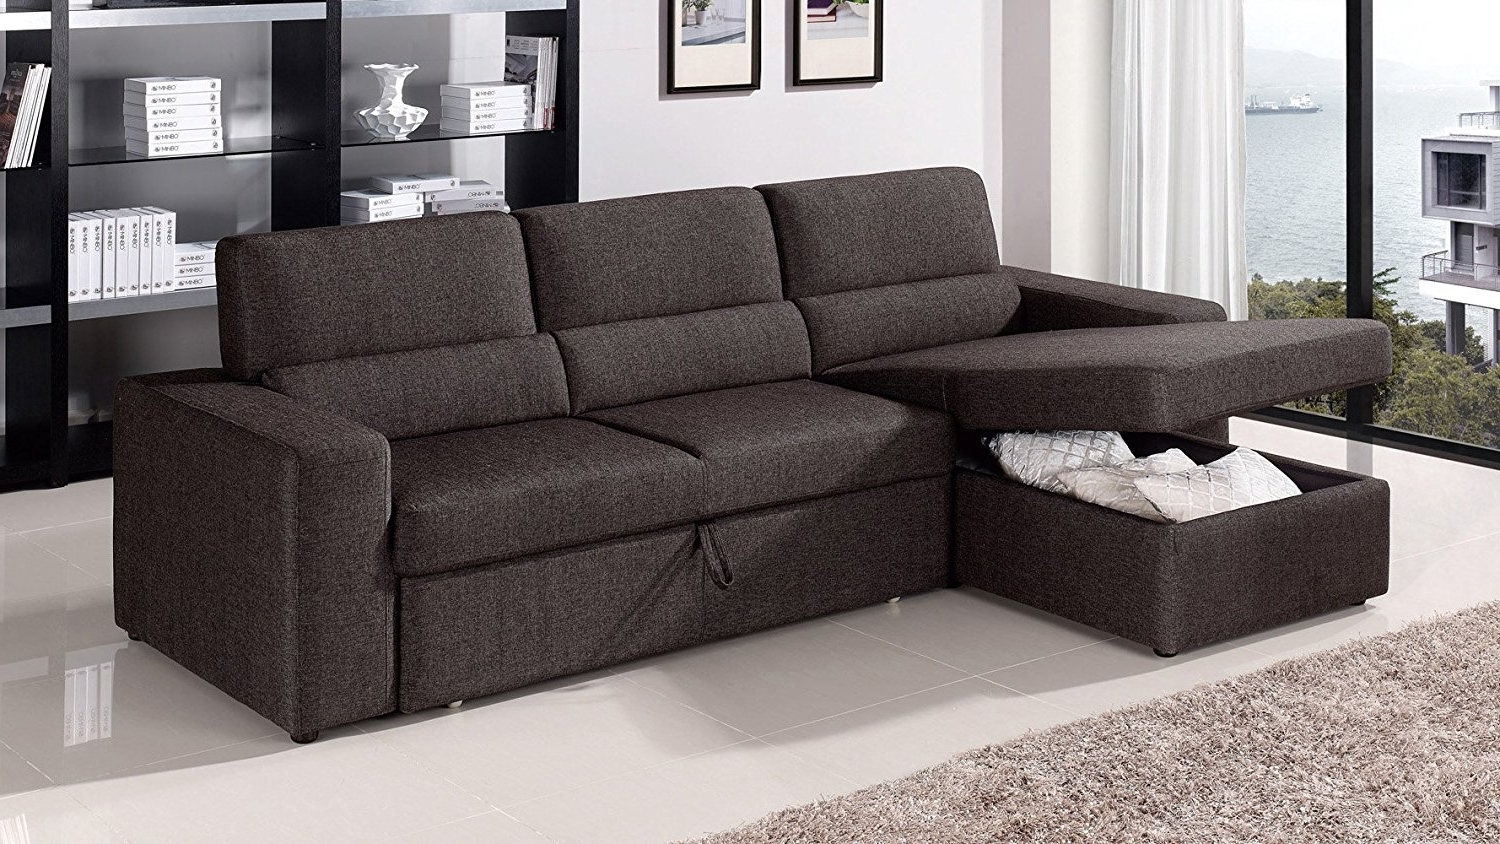 Amazon: Black/brown Clubber Sleeper Sectional Sofa – Left Inside Well Known Sofa Bed Chaises (View 1 of 15)